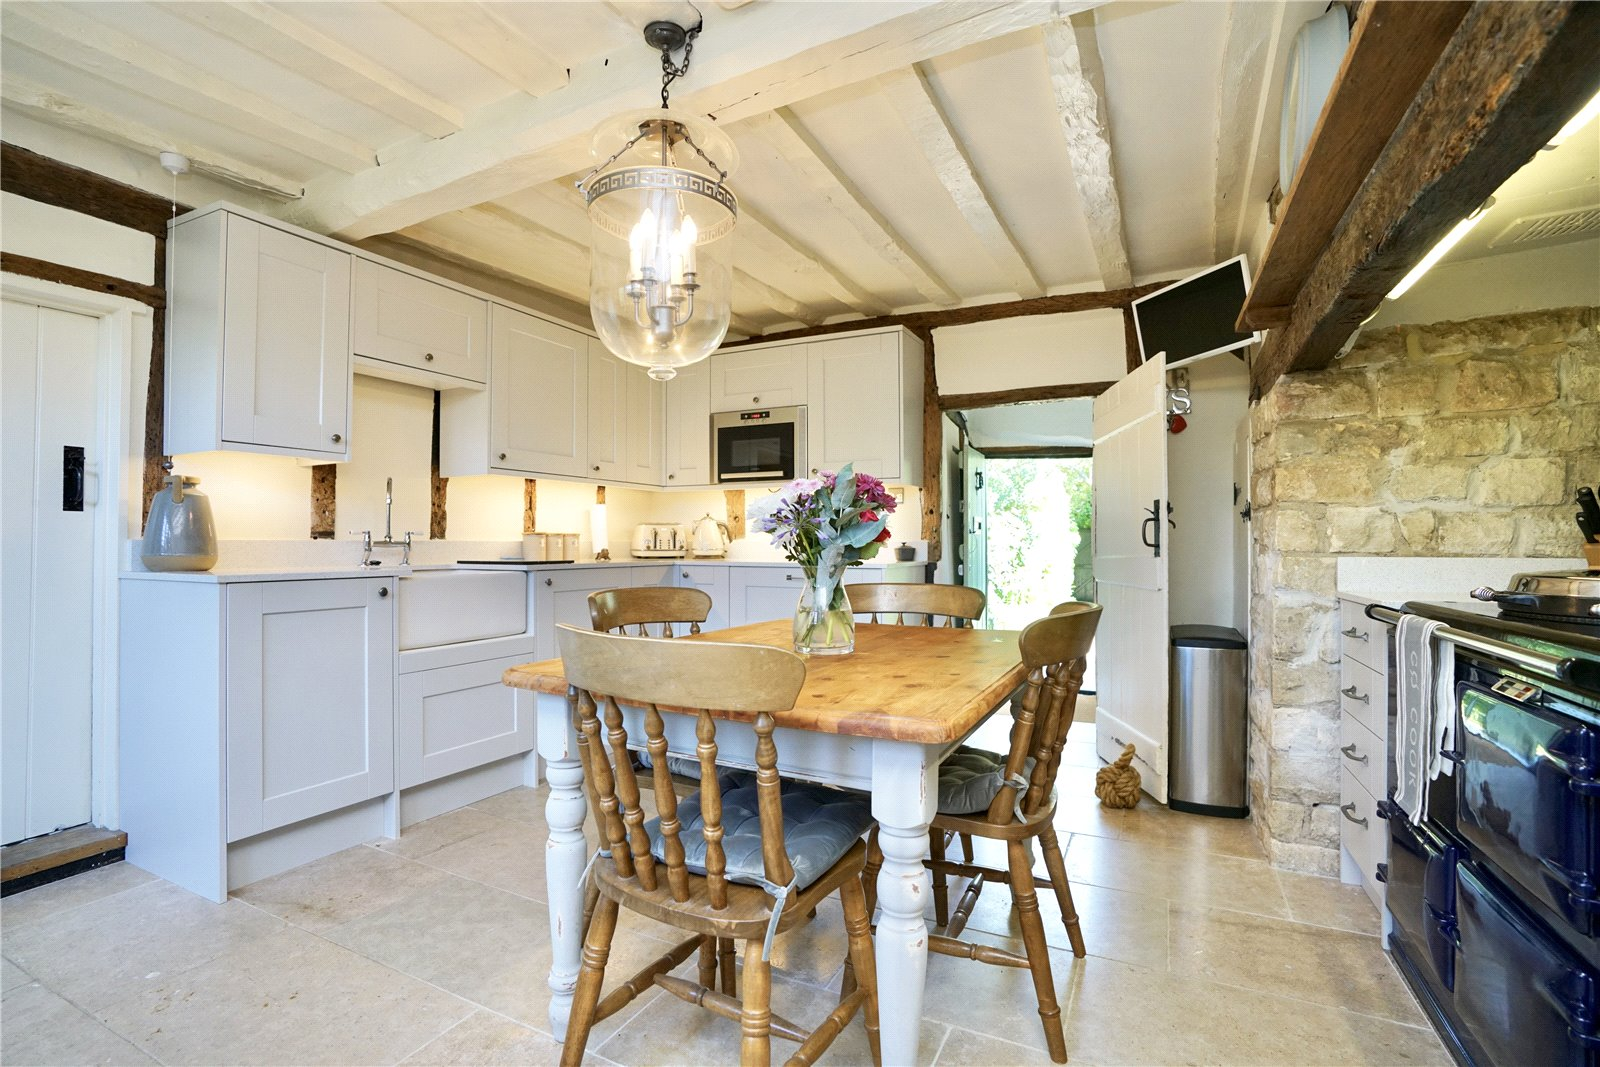 3 bed house for sale in Great Staughton  - Property Image 4